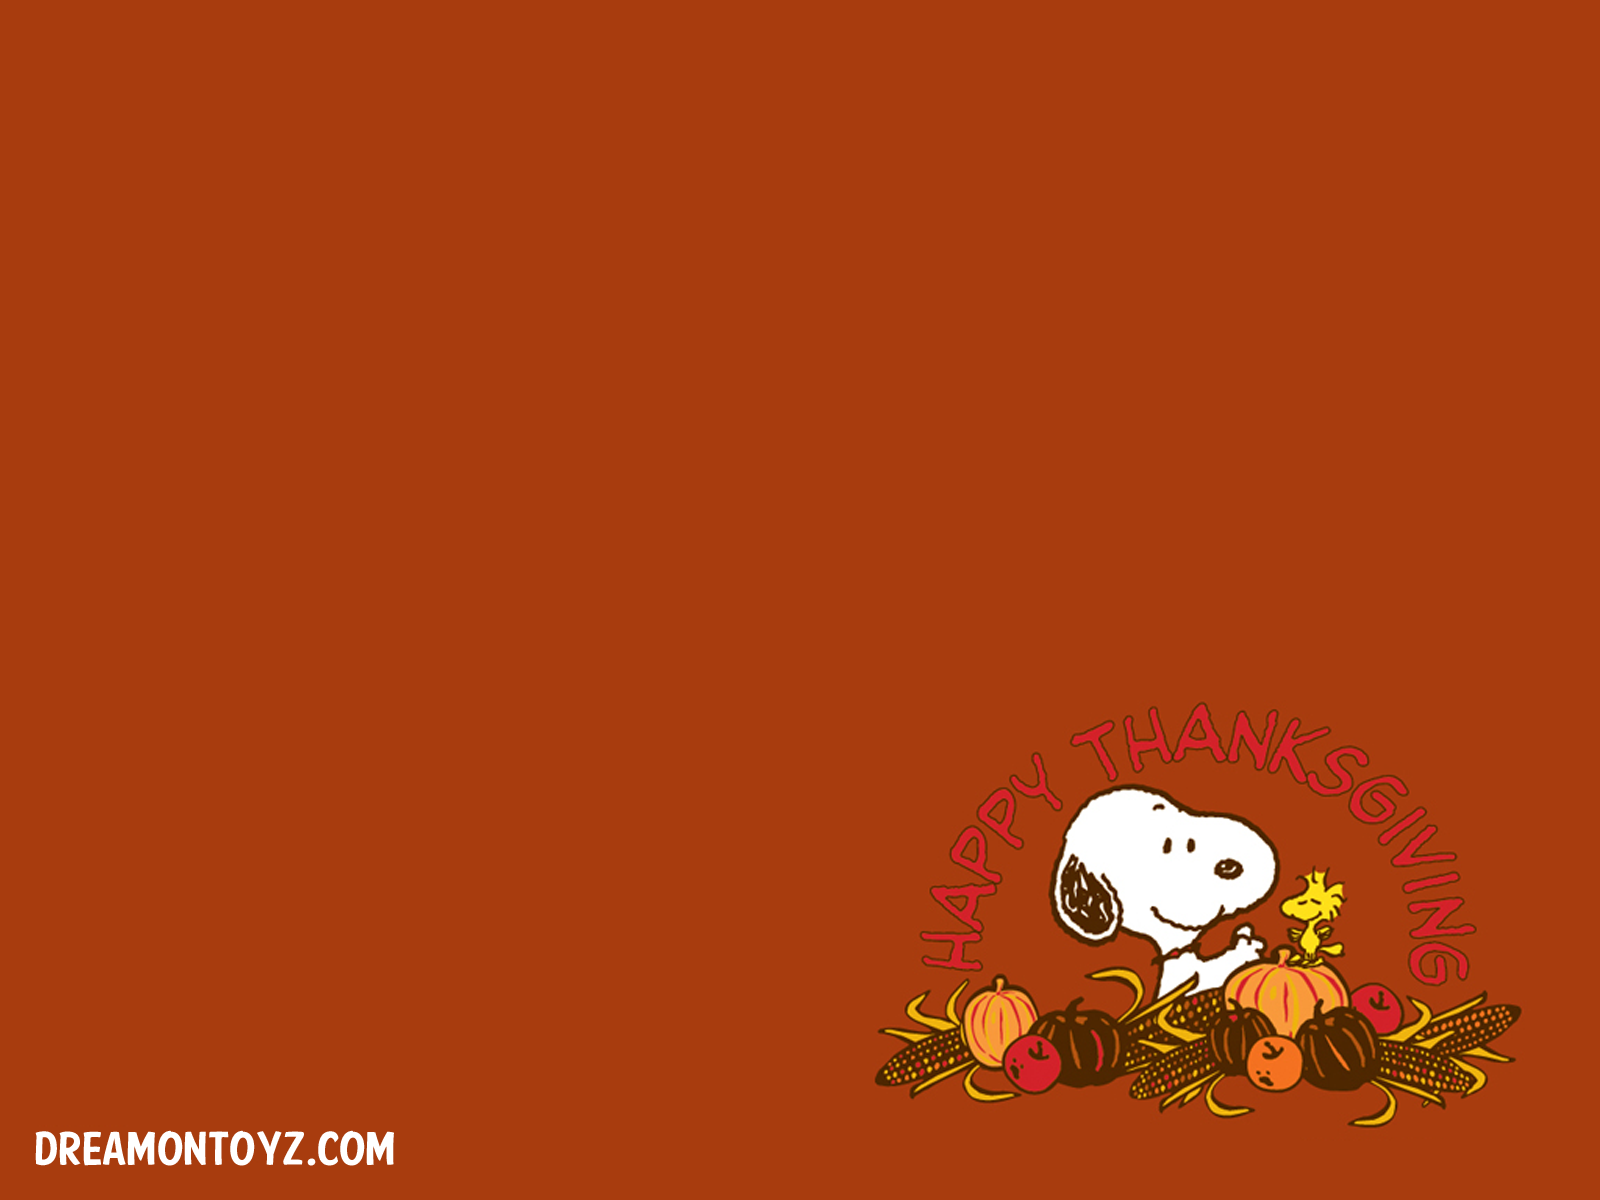 Woodstock Thanksgiving Wallpaper Html - Quoteko.com